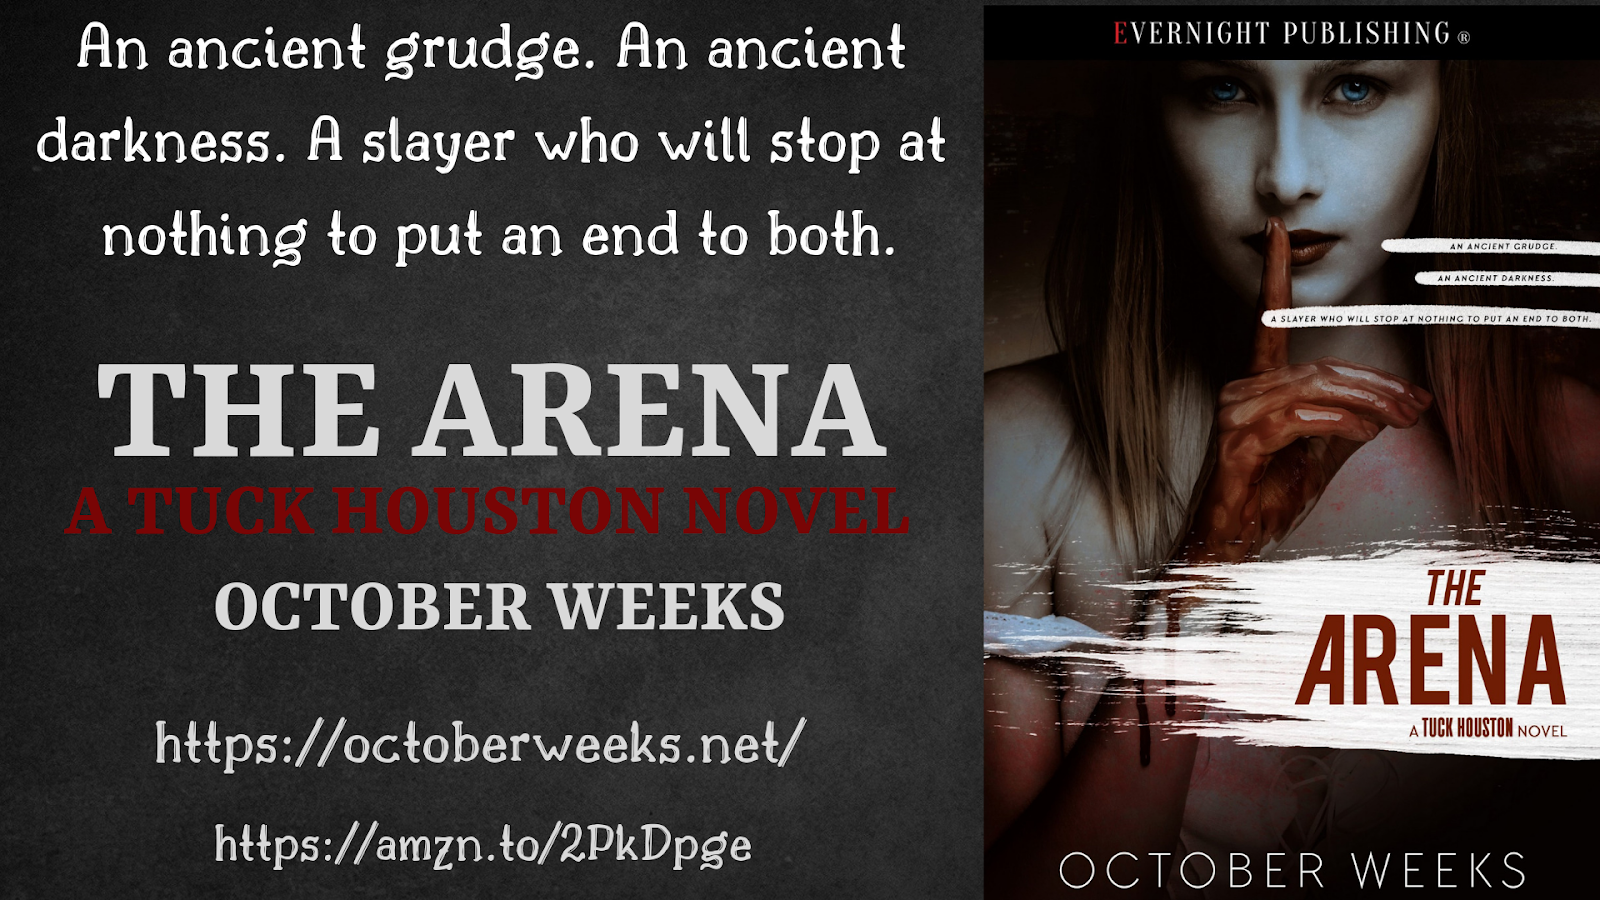 New Release - The Arena